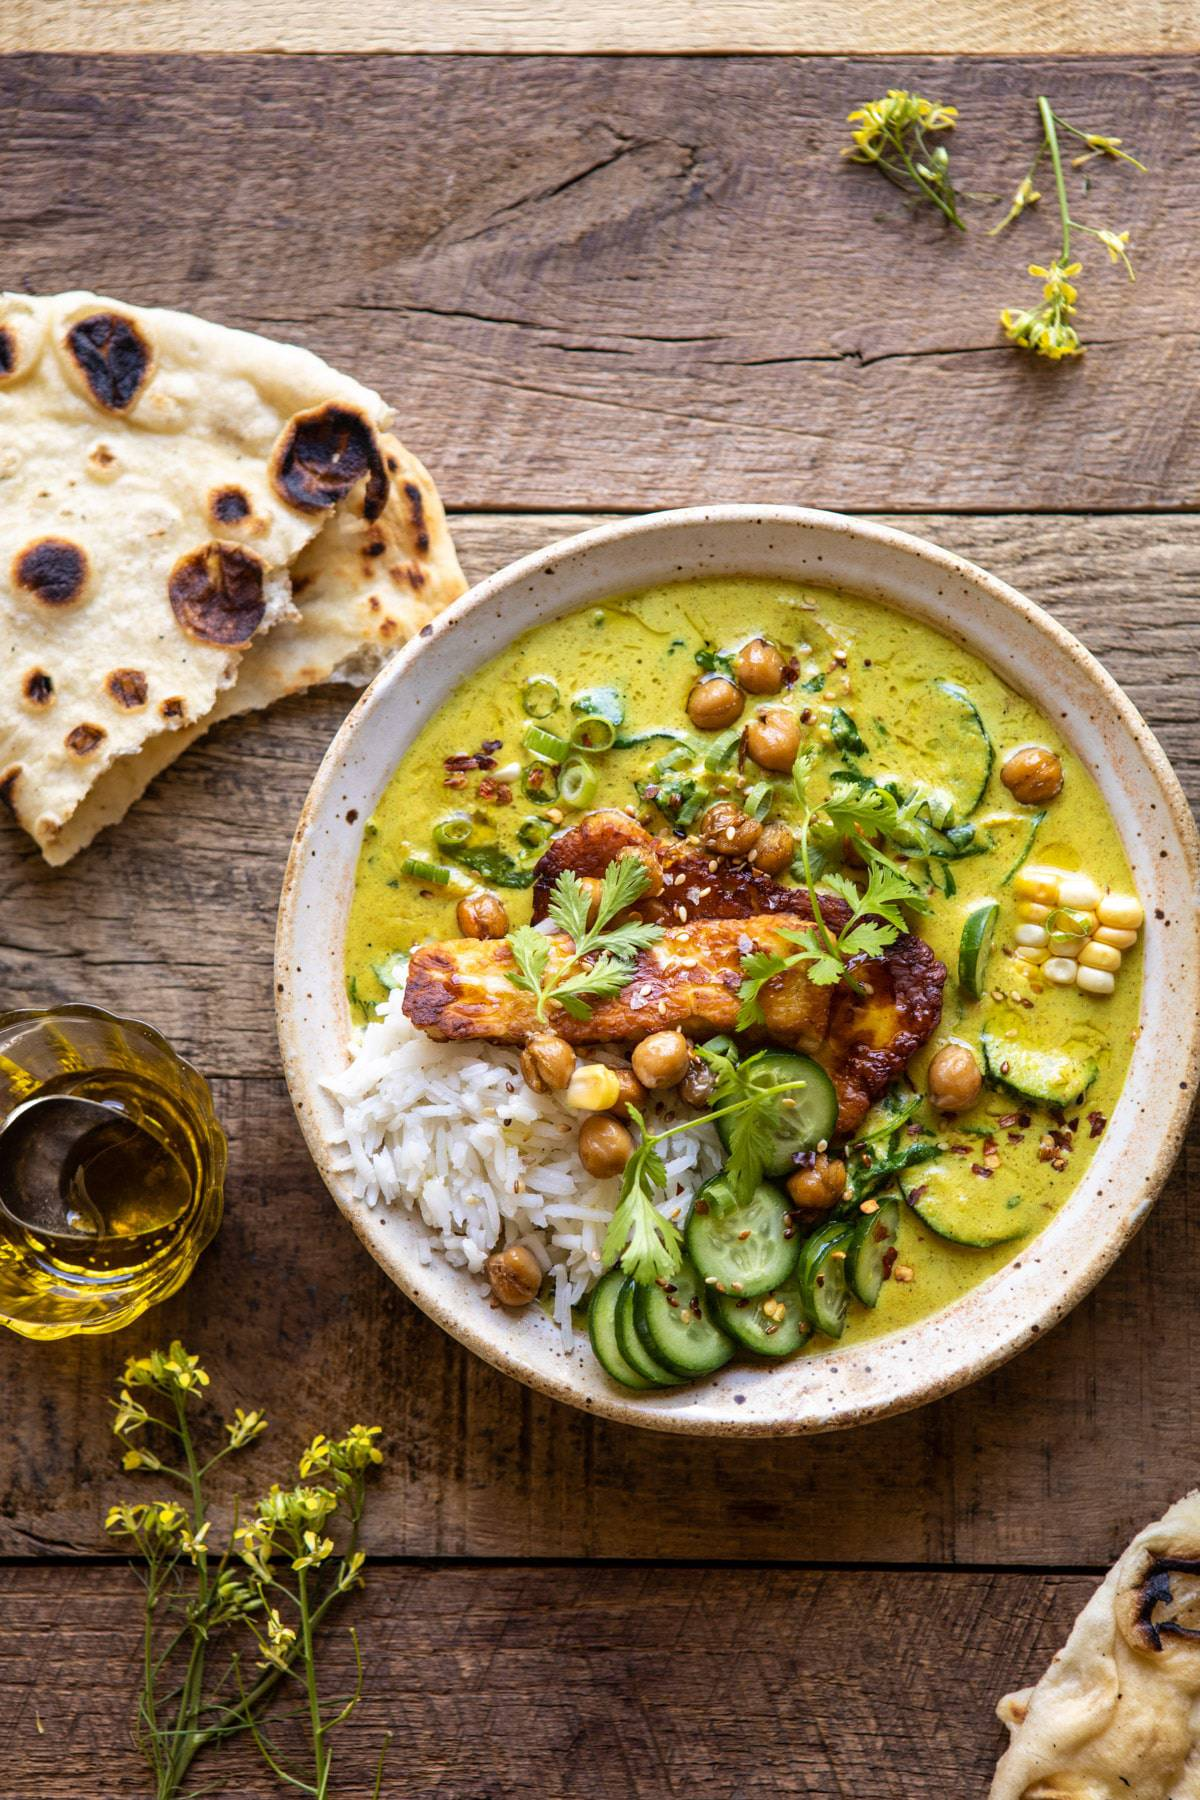 Summer Coconut Chickpea Curry With Rice And Fried Halloumi